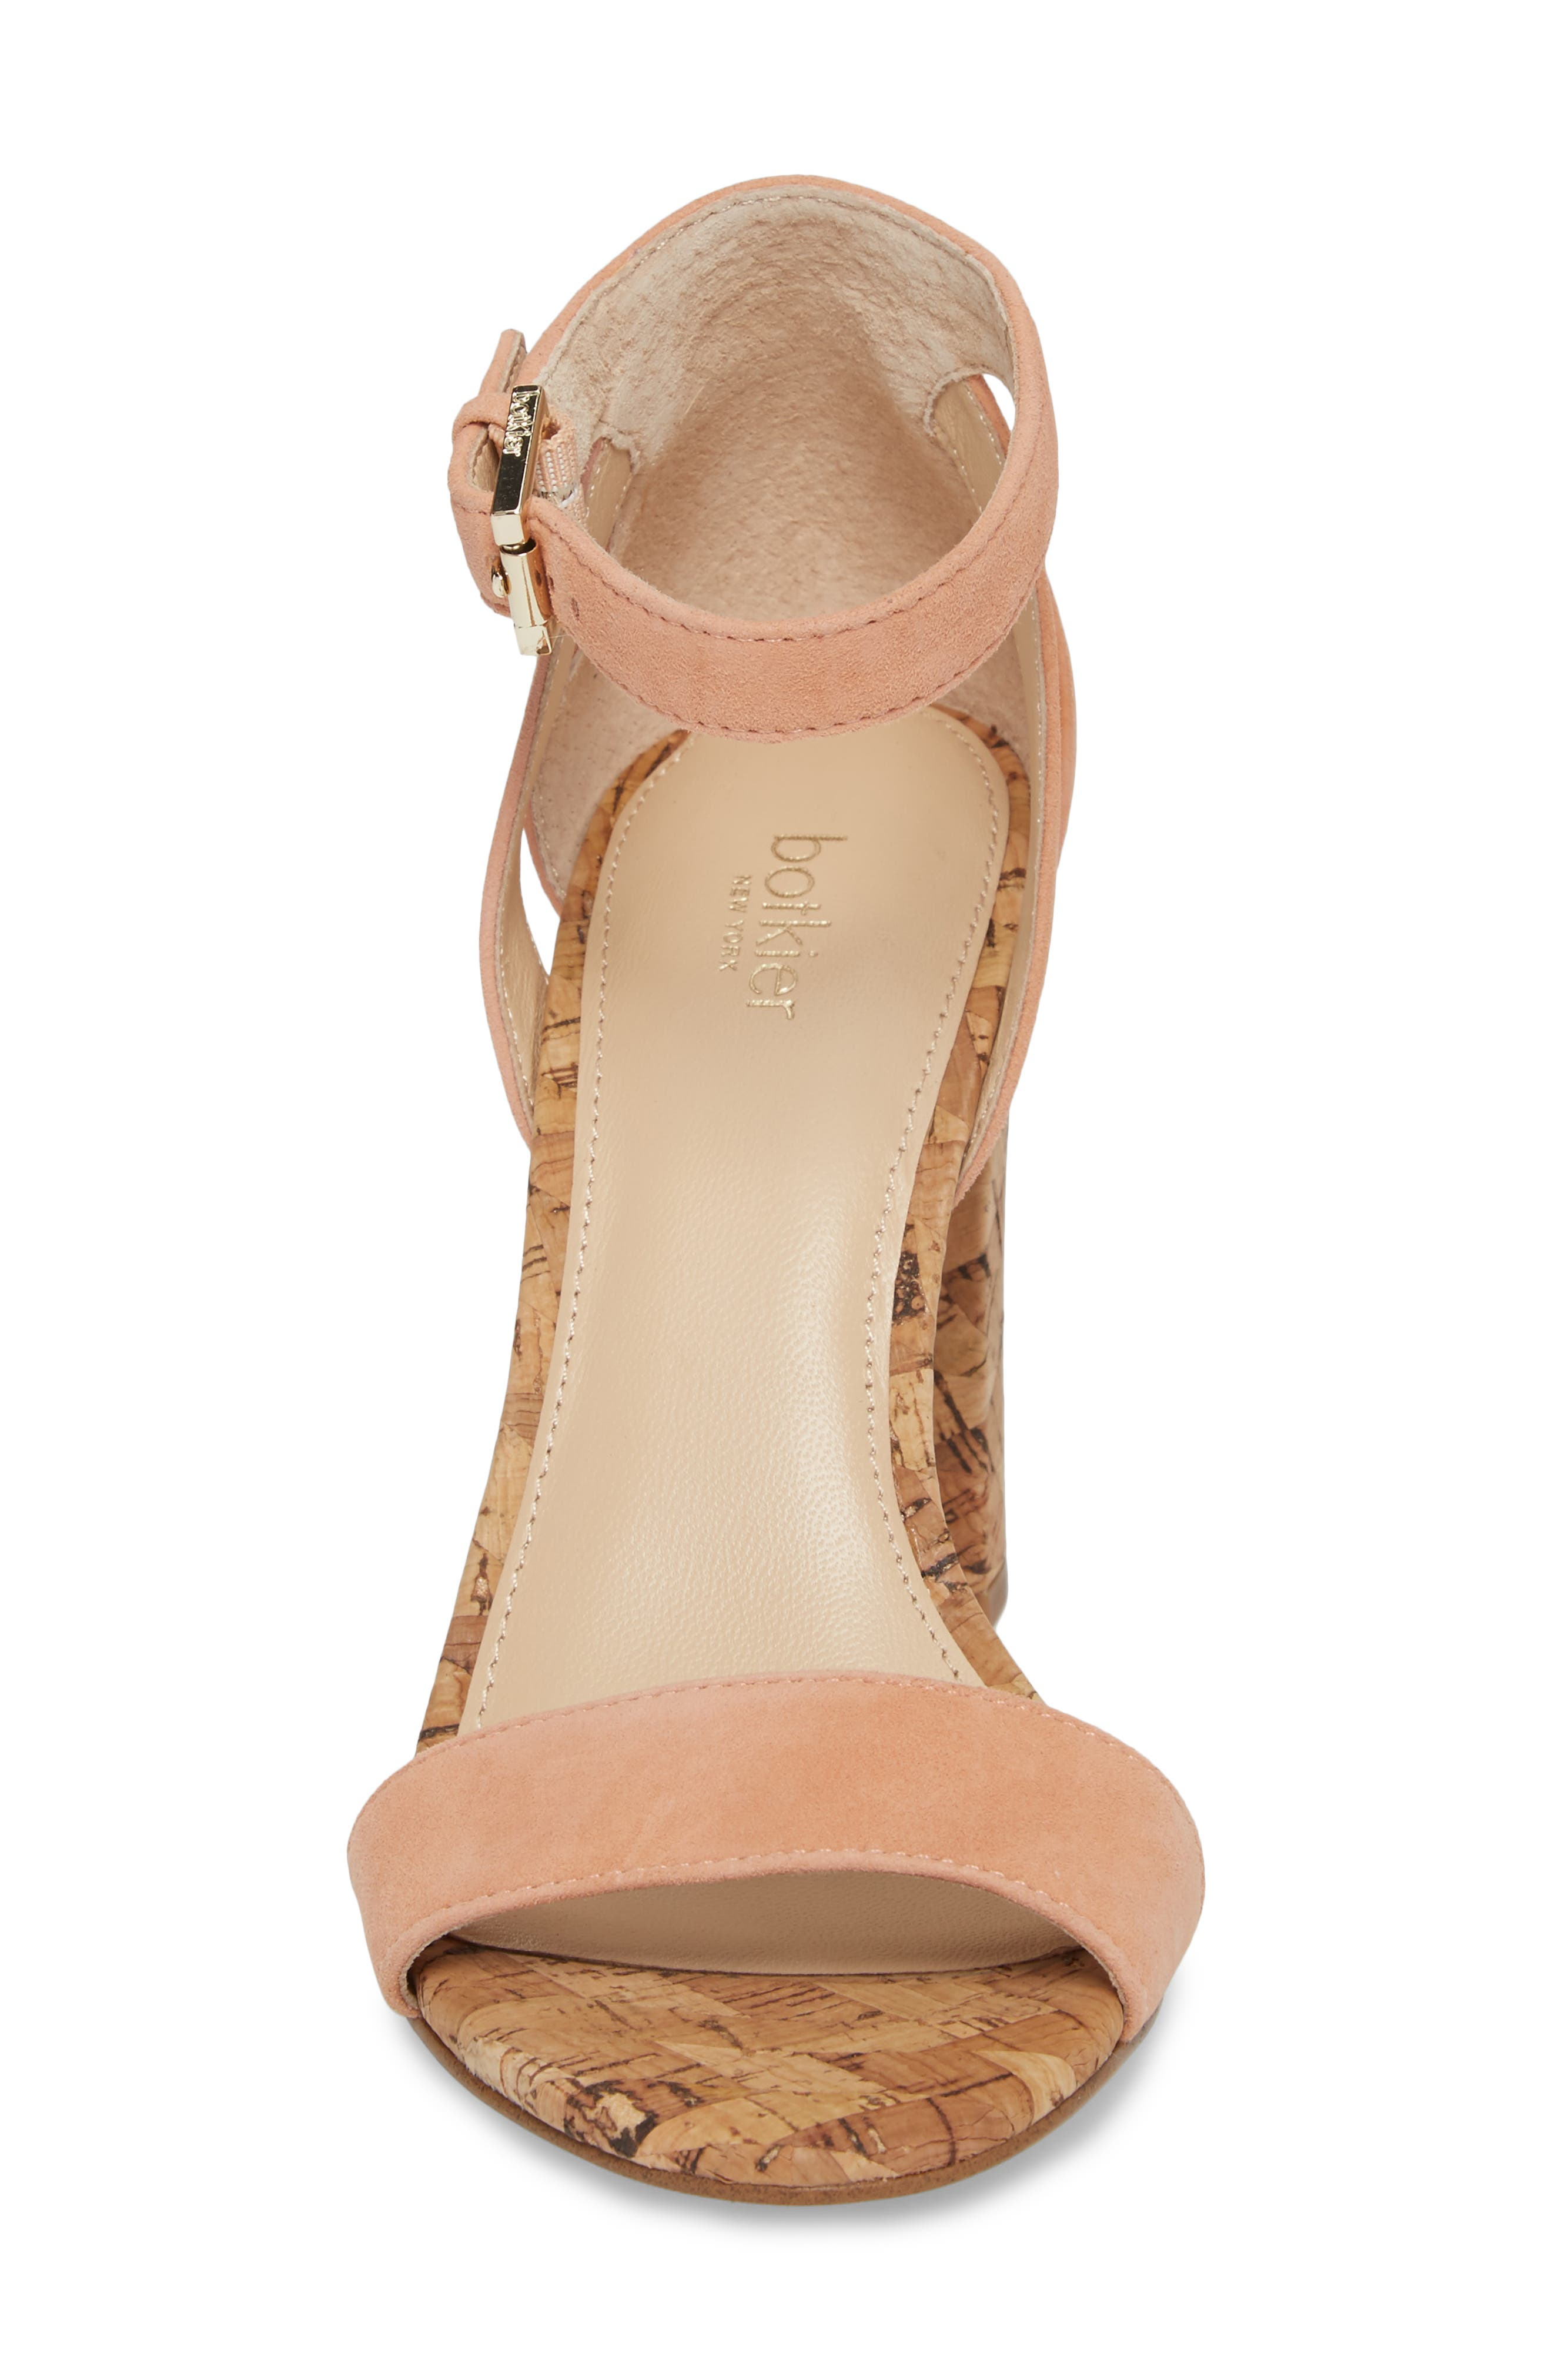 Gianna Ankle Strap Sandal,                             Alternate thumbnail 4, color,                             Soft Peach Suede